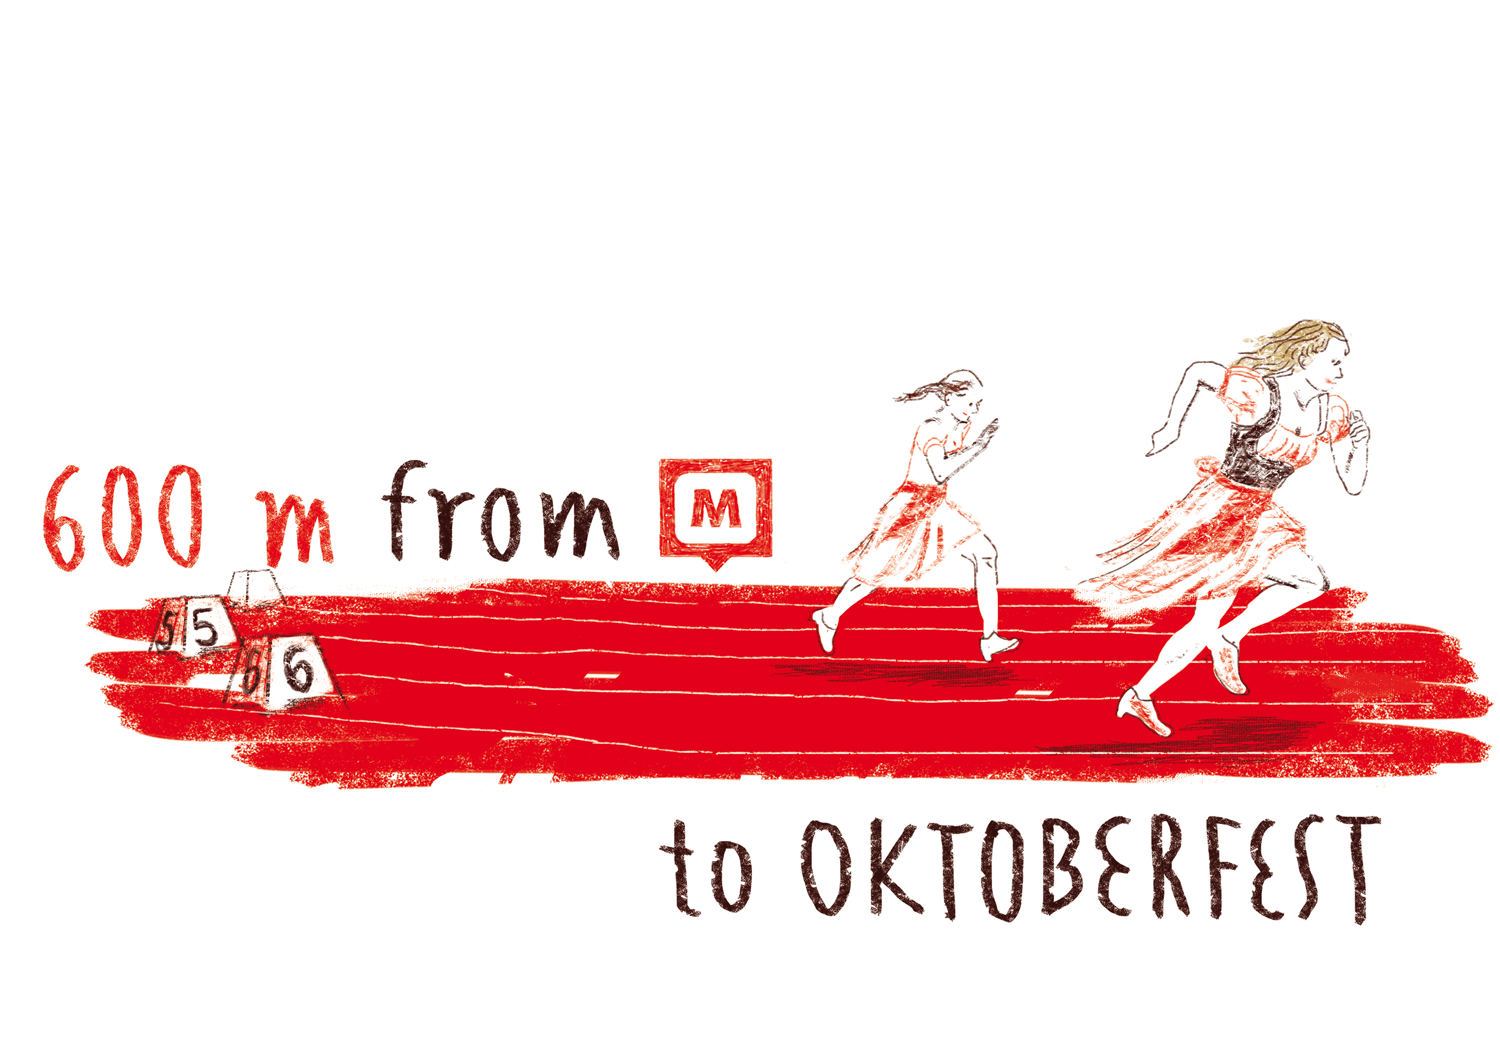 Facts about Oktoberfest